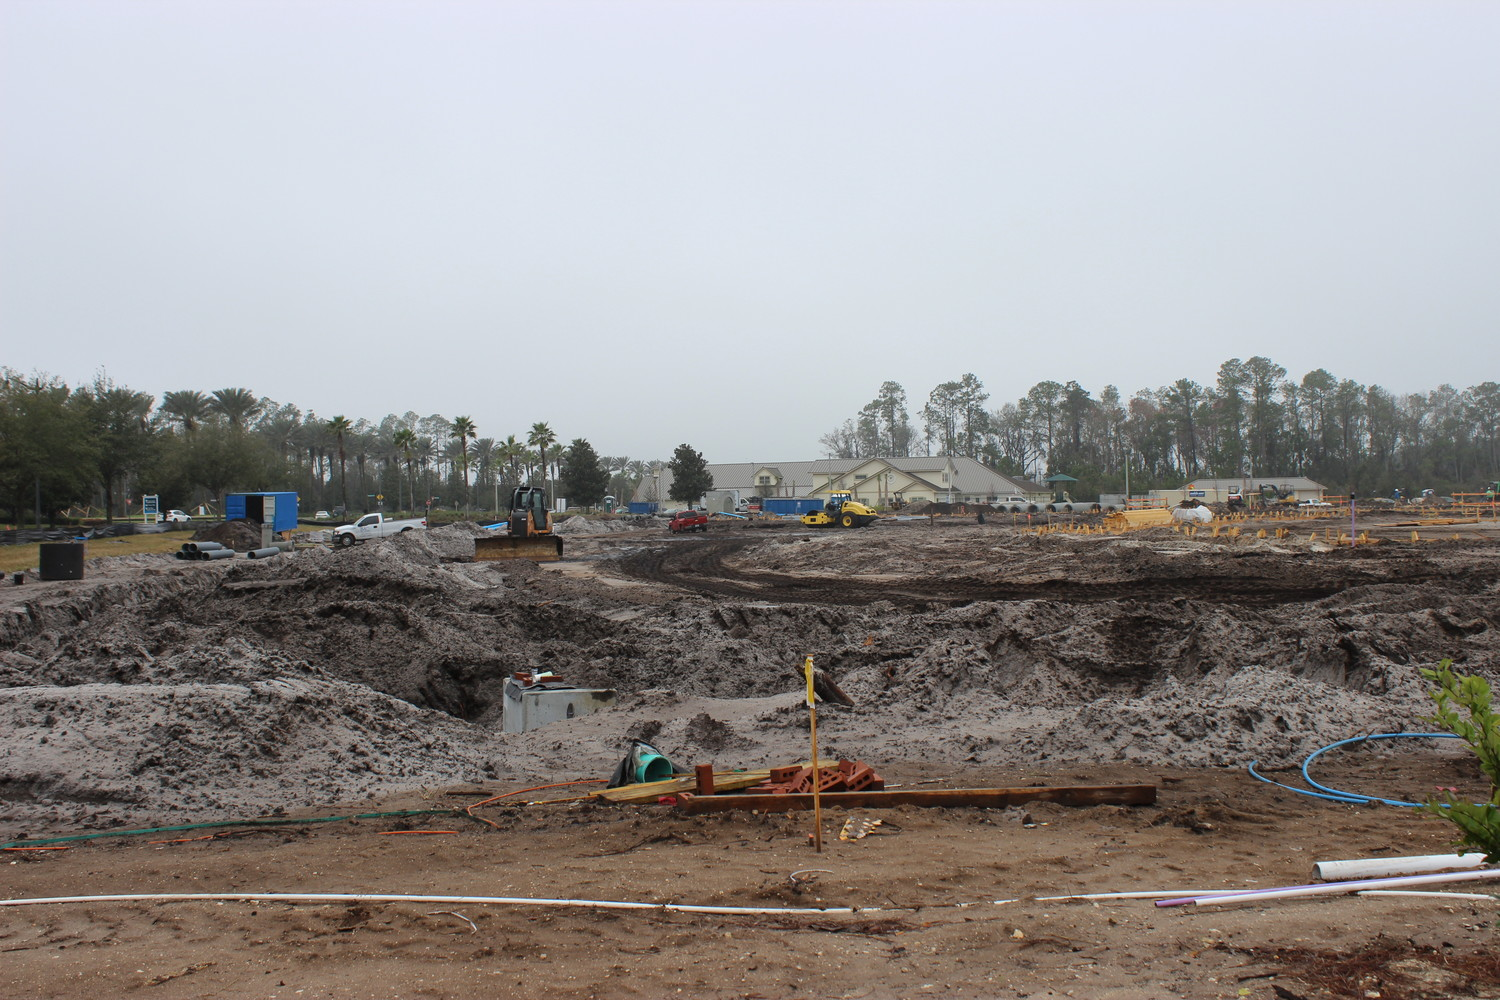 Construction begins to take place on the new independent living community.